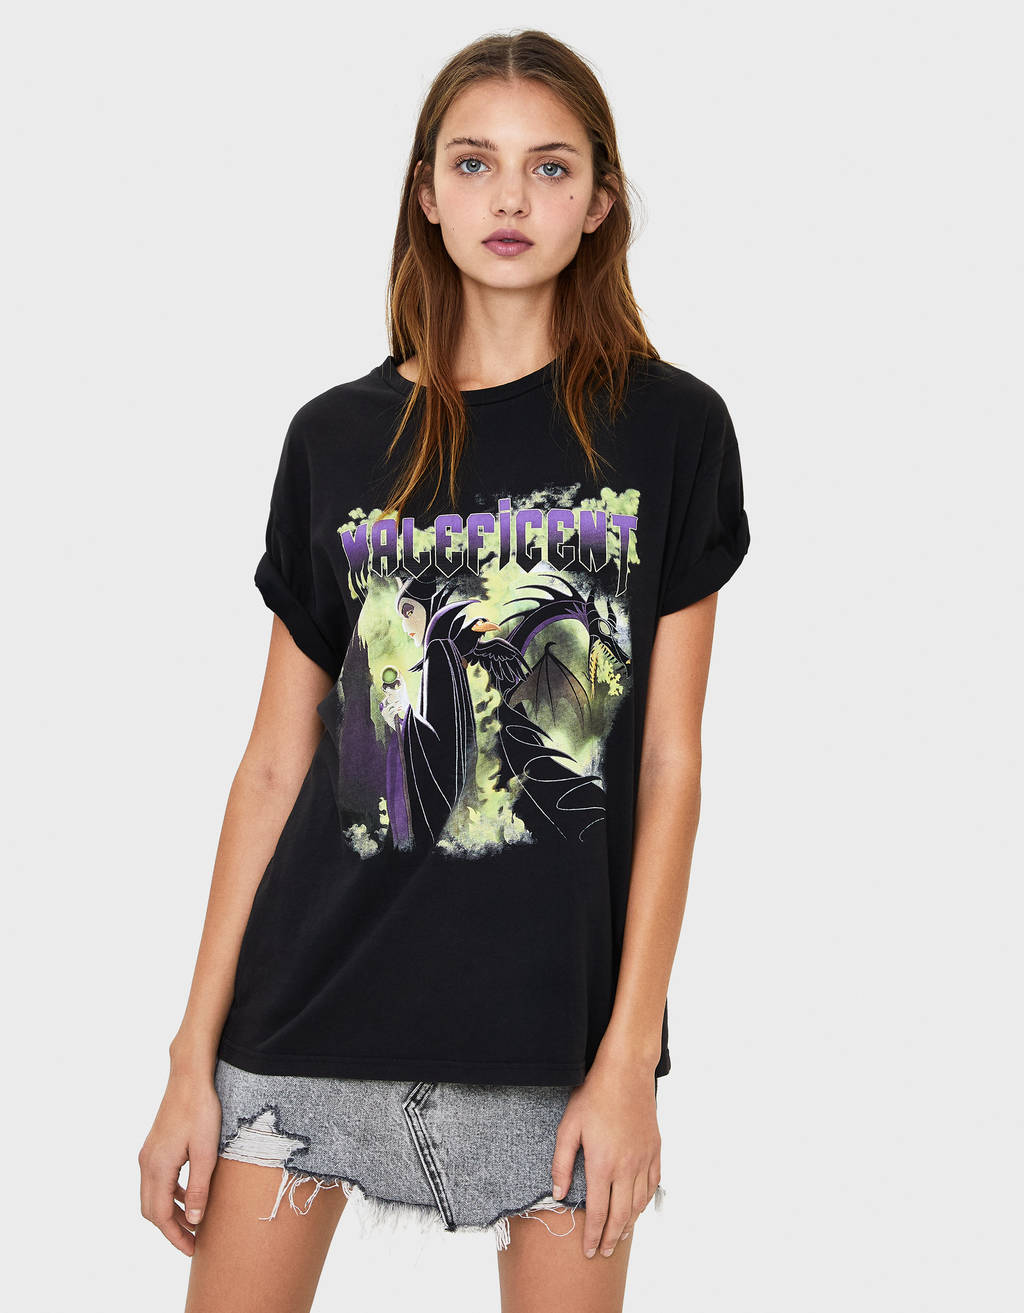 Maleficent print T-shirt